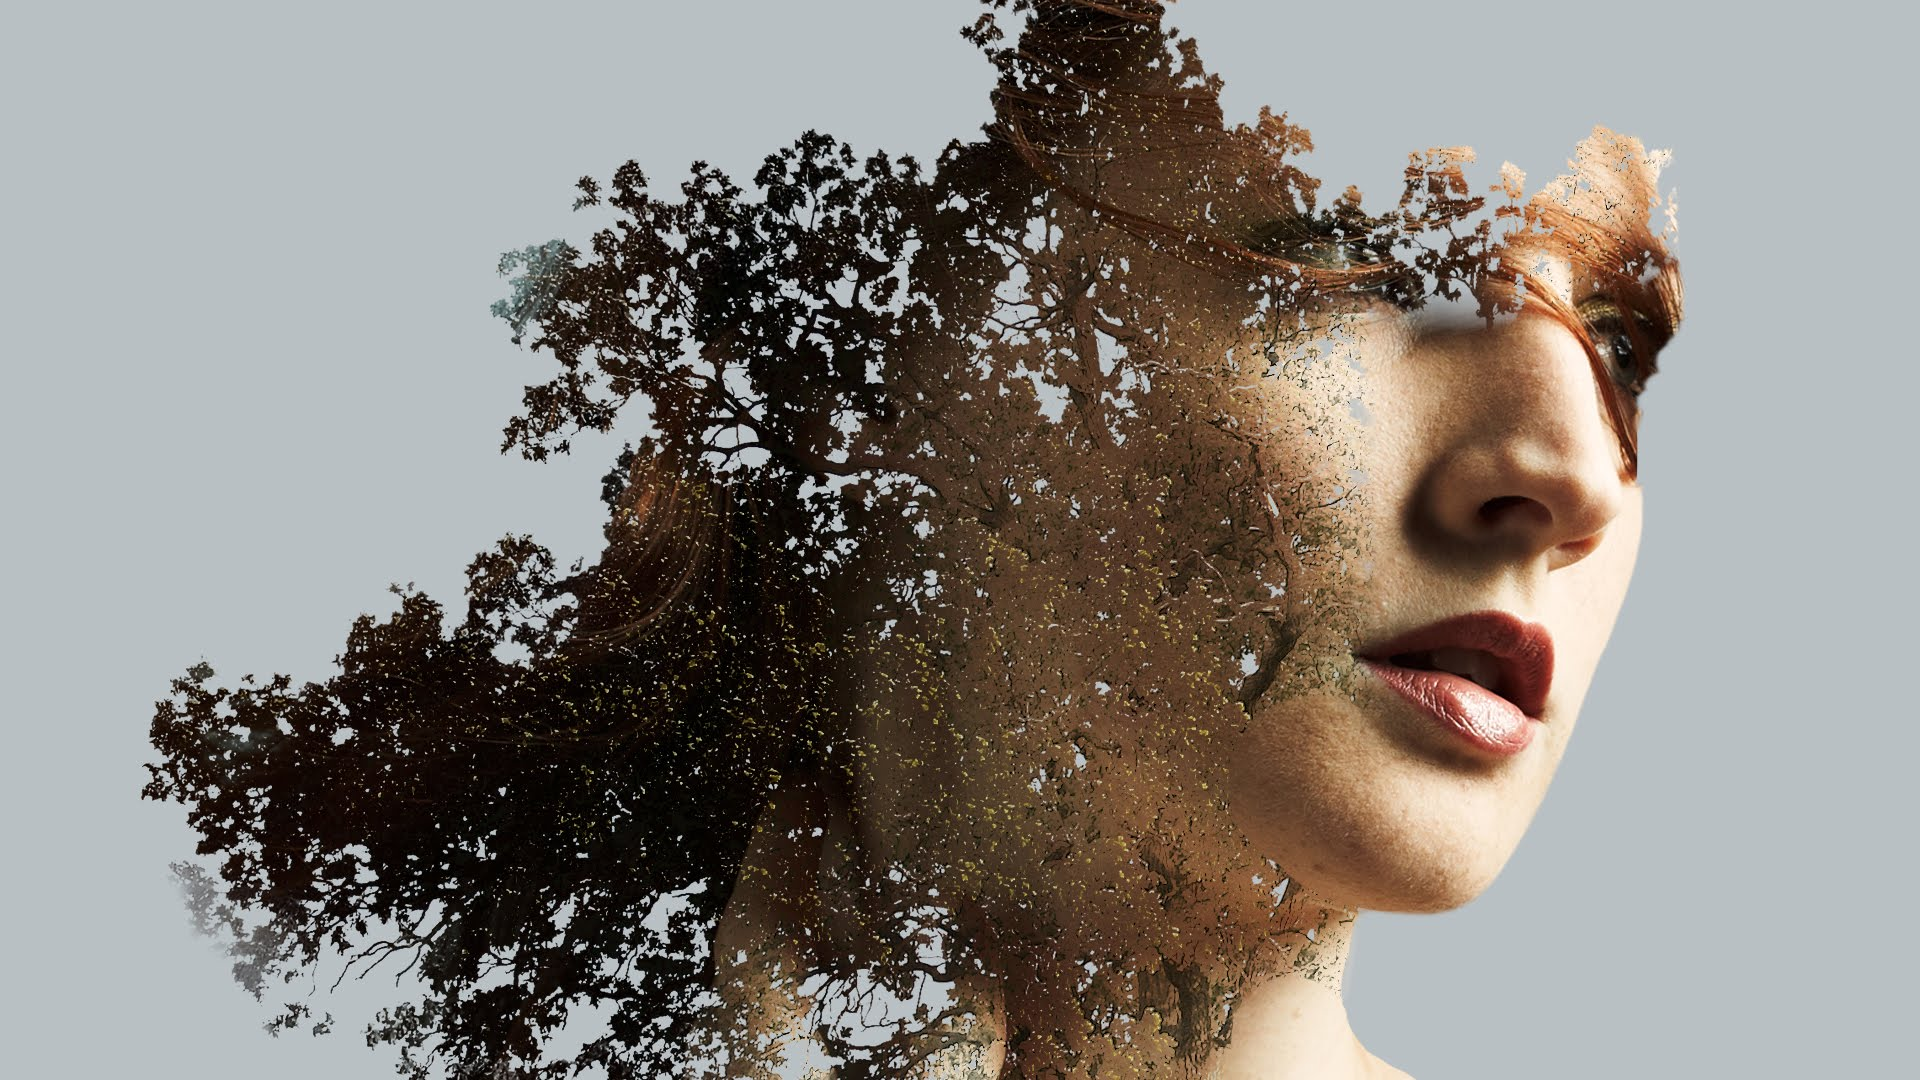 Advanced Double Exposure Effect In Photoshop